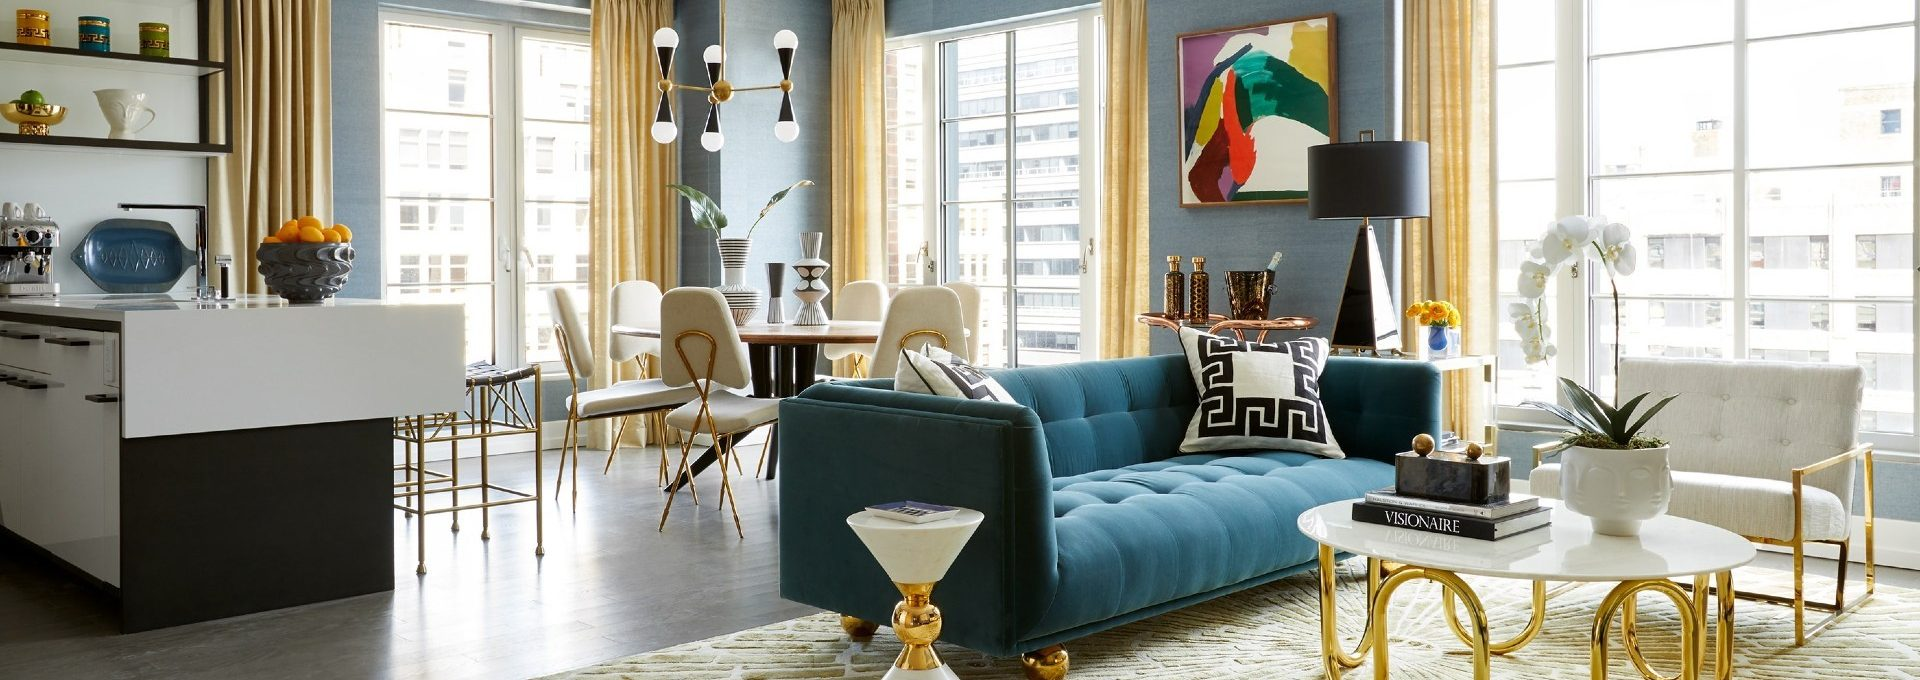 Jonathan Adler Modern and Chic Interior Design Projects_COver